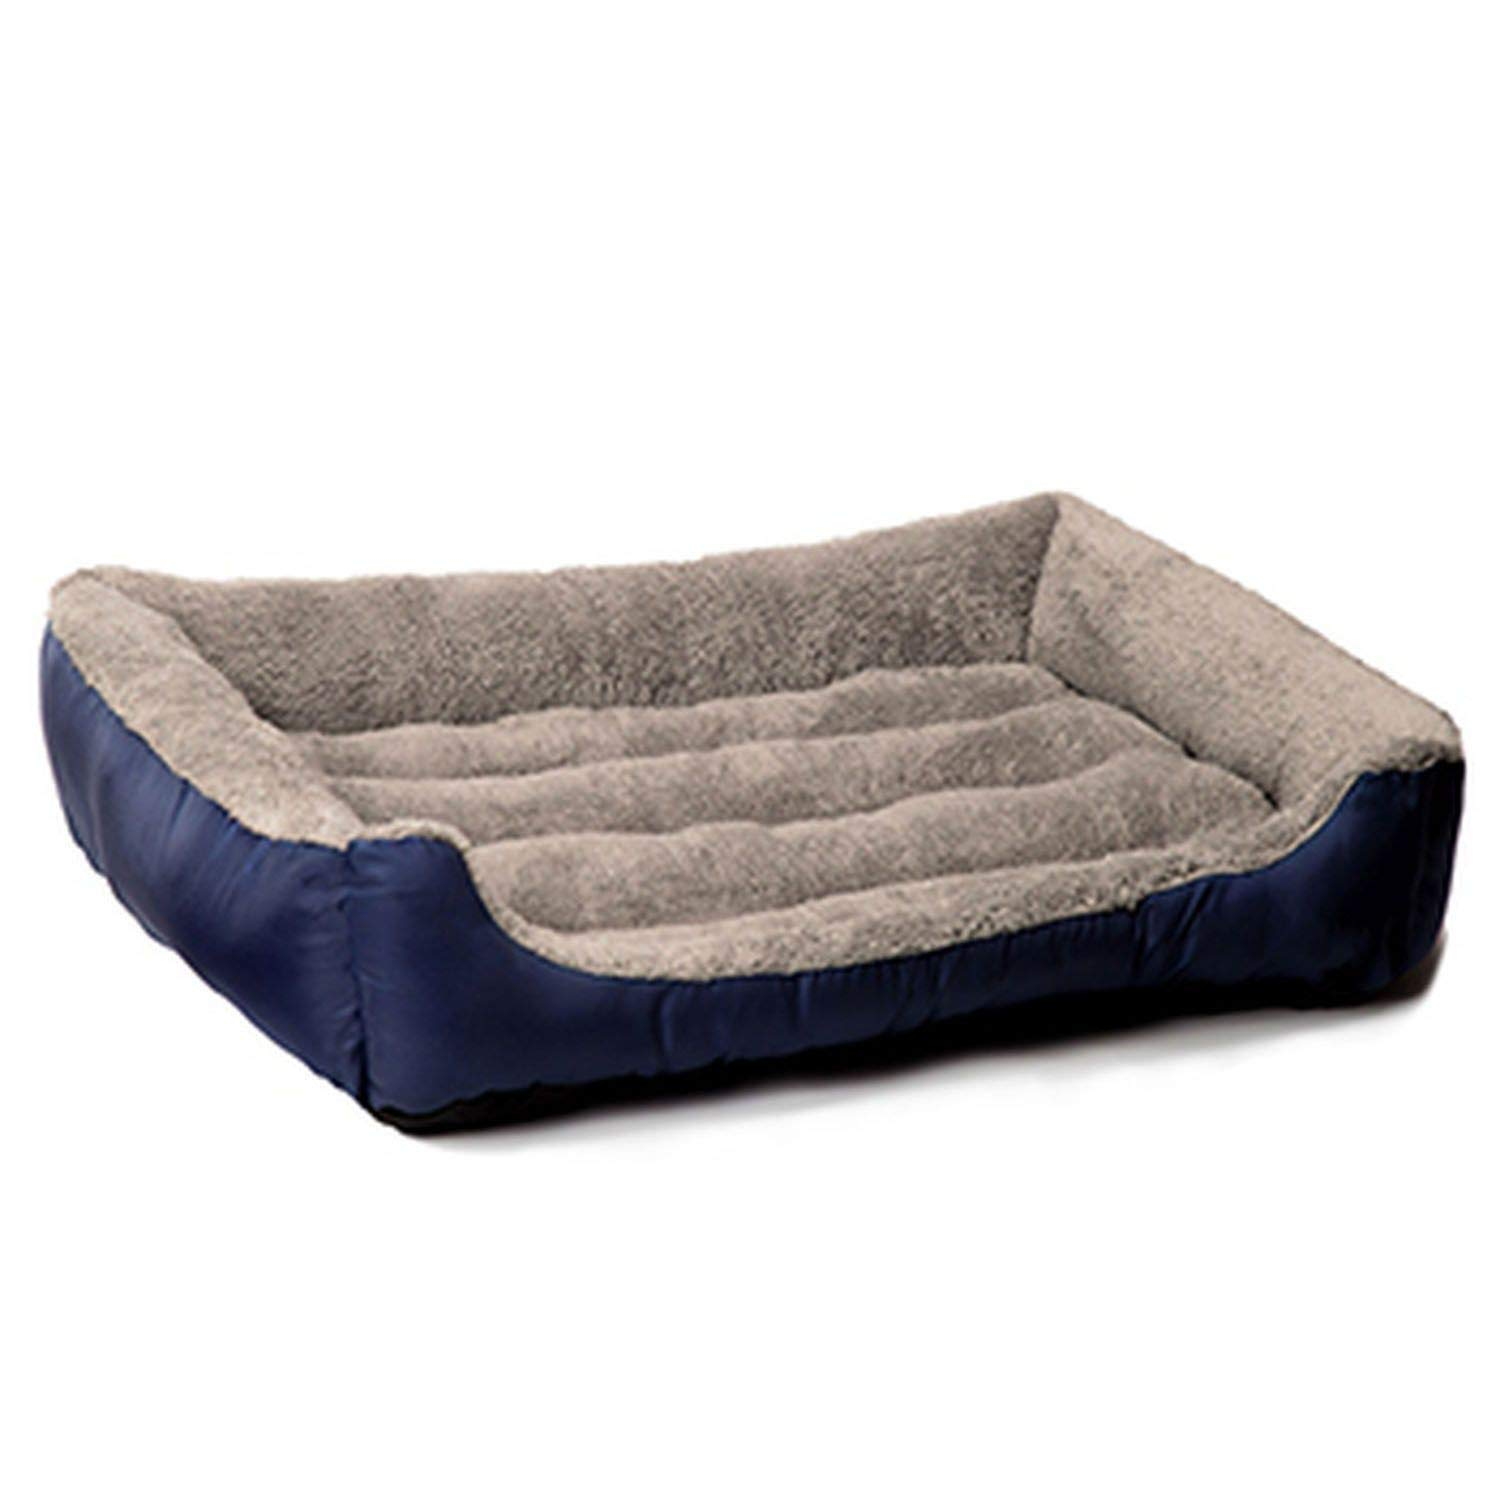 CHUNXU Warm Dog Bed Soft Dog Baskets Used Warm Kennel for Cat Puppy Plus Size,Navy bluee,XL 80x60x15cm